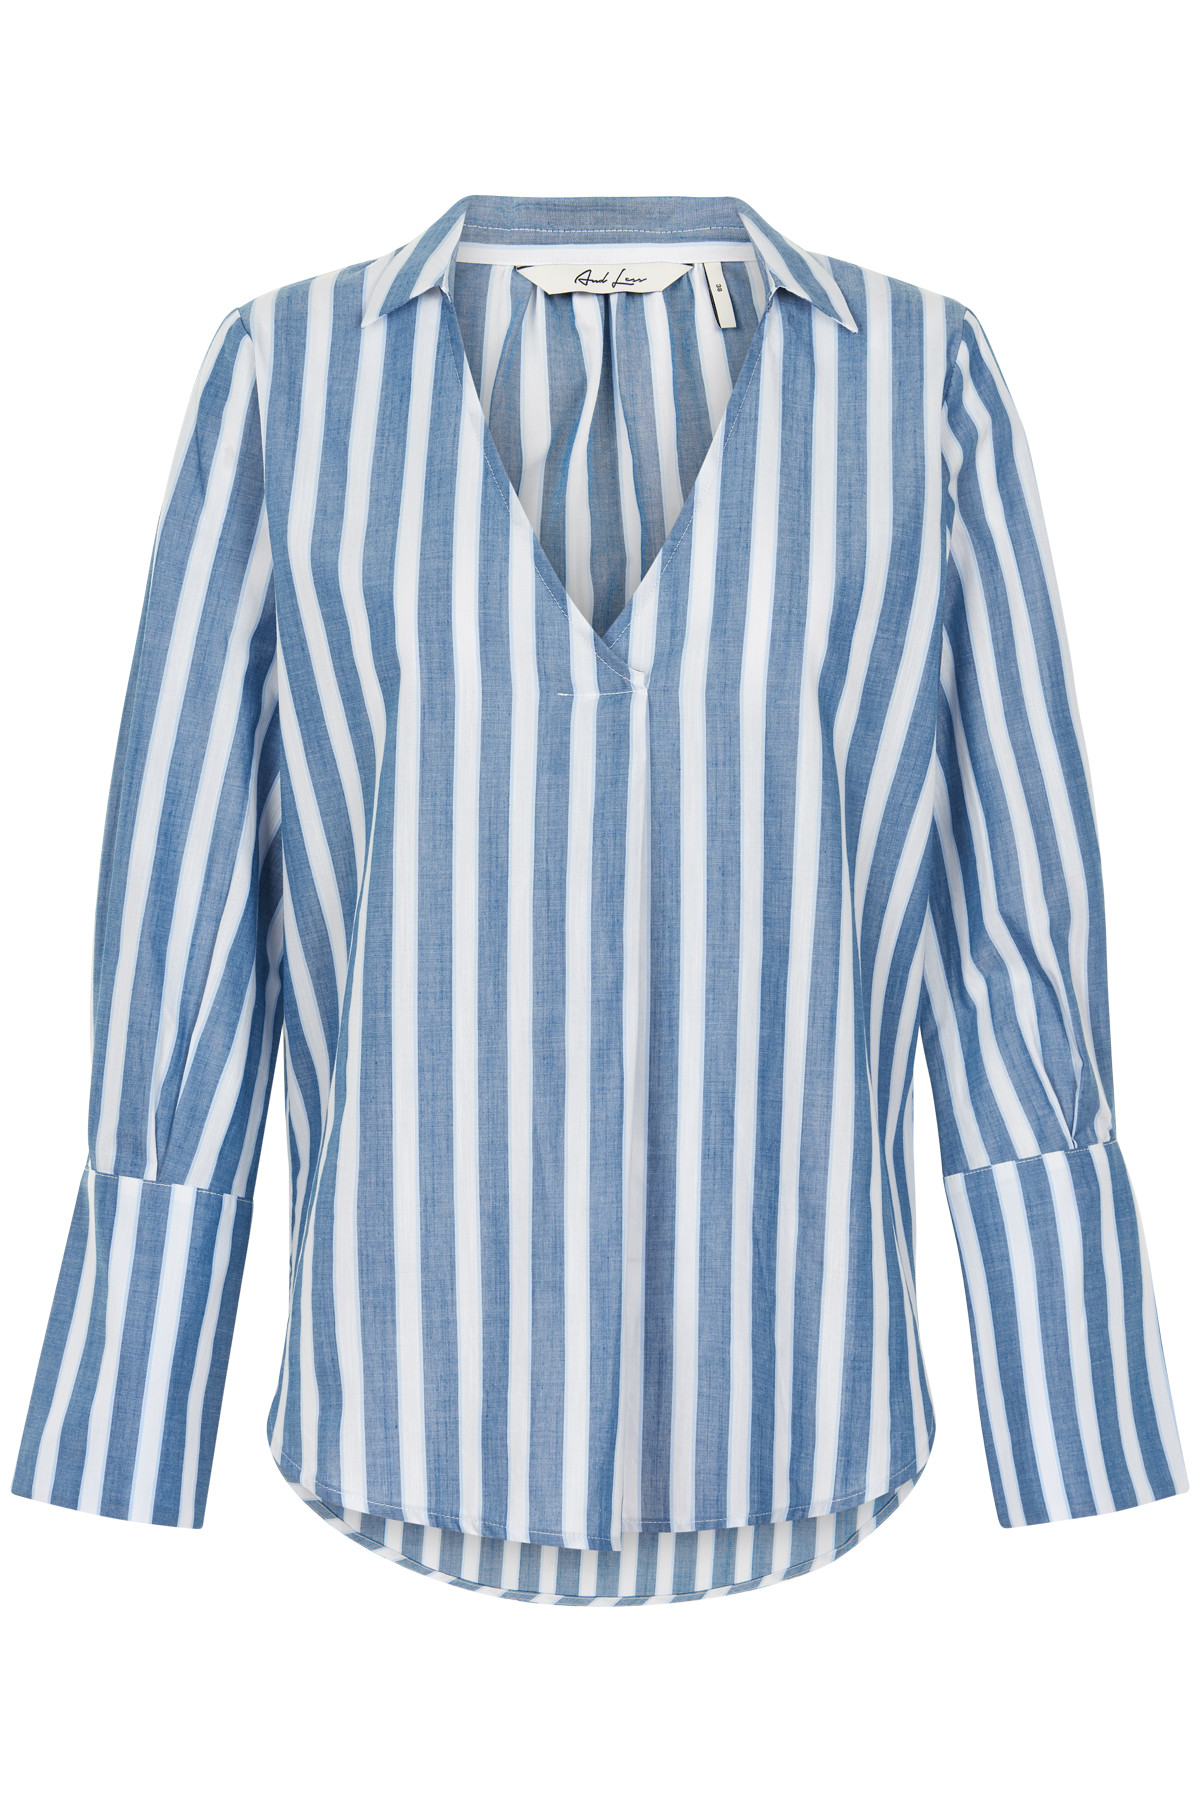 Image of   AND LESS RAENE BLUSE 5219008 (Blue Stripes, 40)